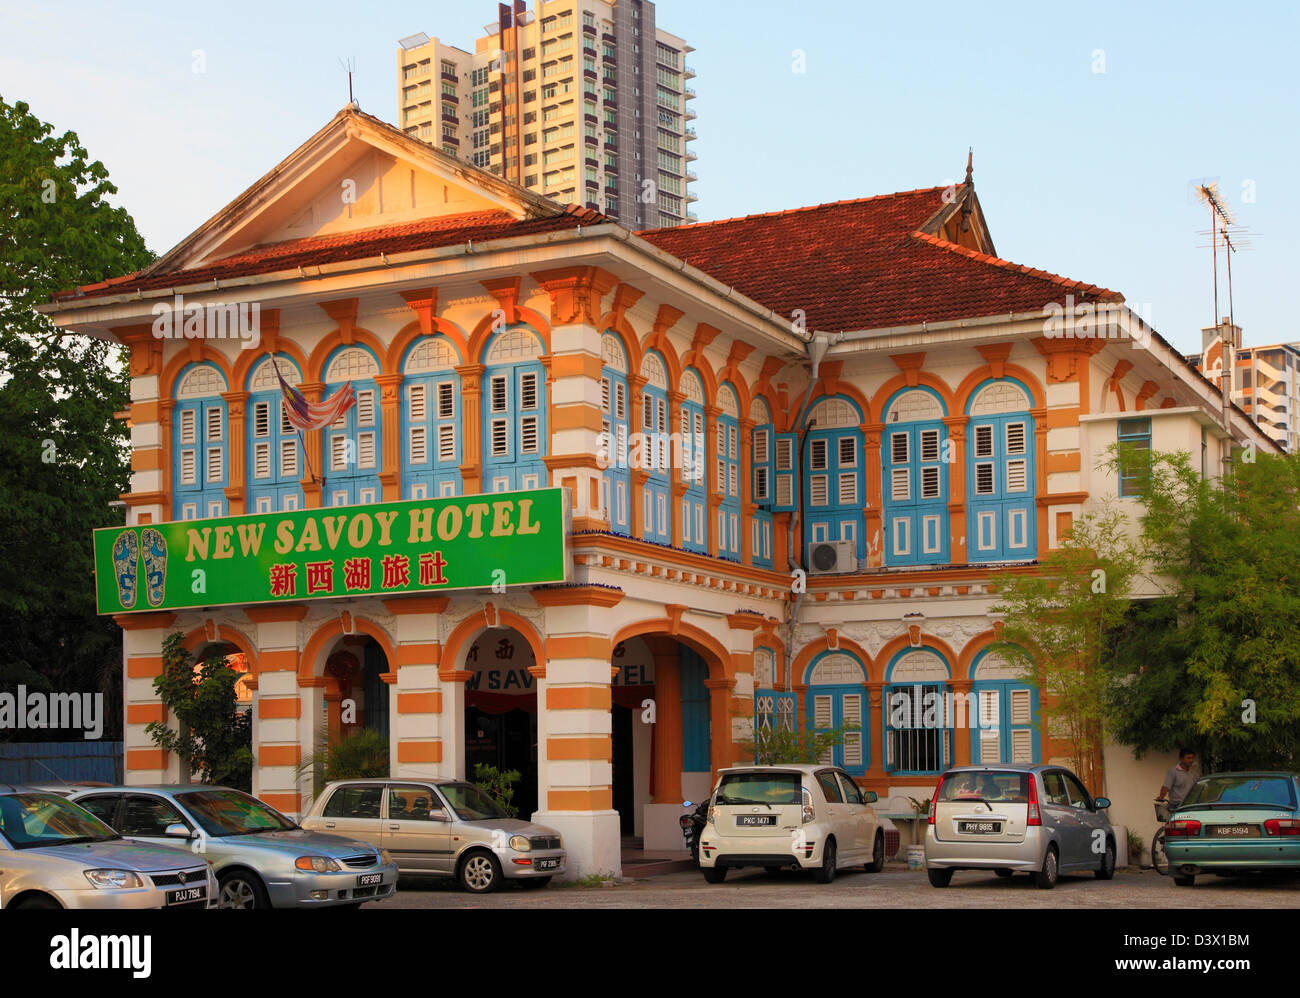 Malaysia, Penang, Georgetown, New Savoy Hotel, restored historic architecture, - Stock Image